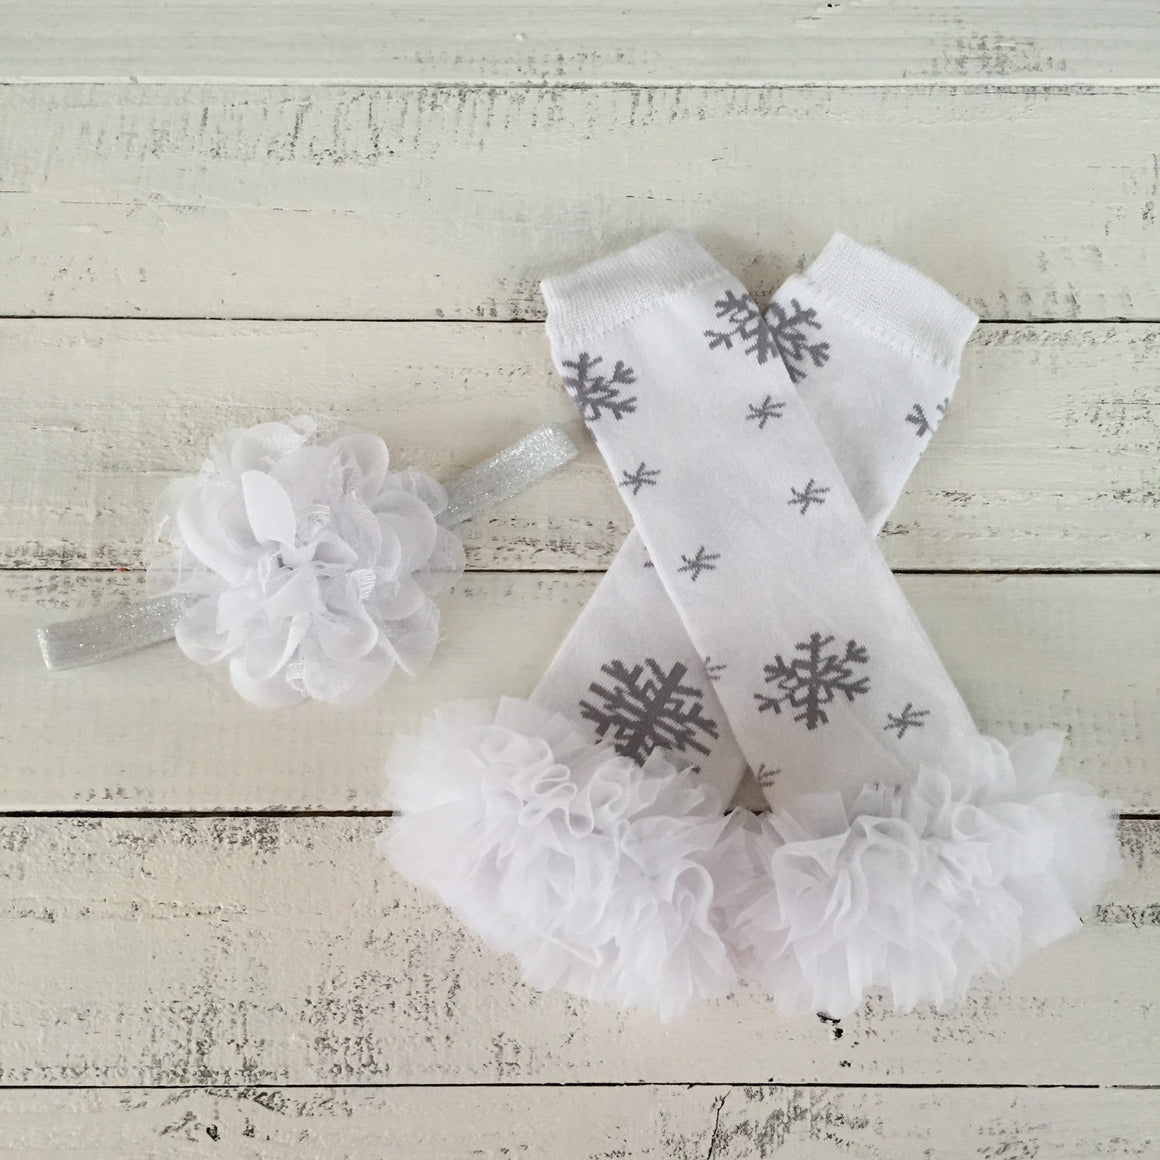 Snowflake Leg Warmers and matching headbands - HoneyLoveBoutique